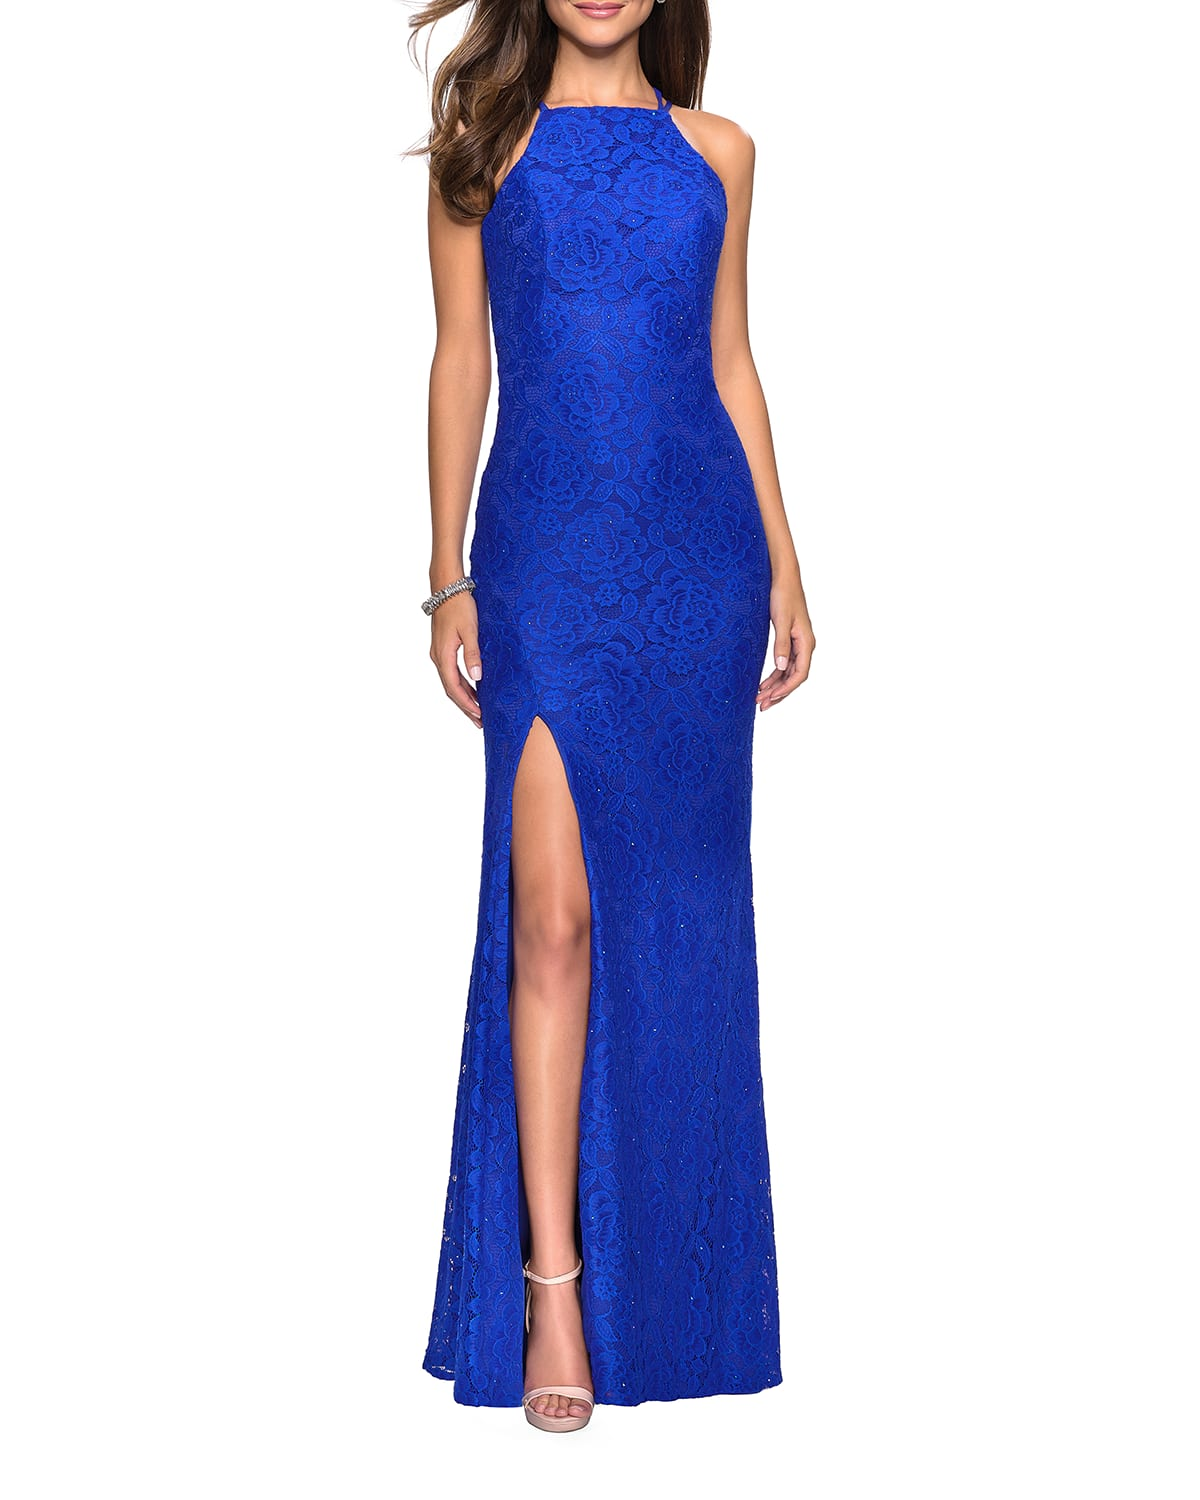 Halter-Neck Strappy-Back Stretch Lace Gown with Sequins